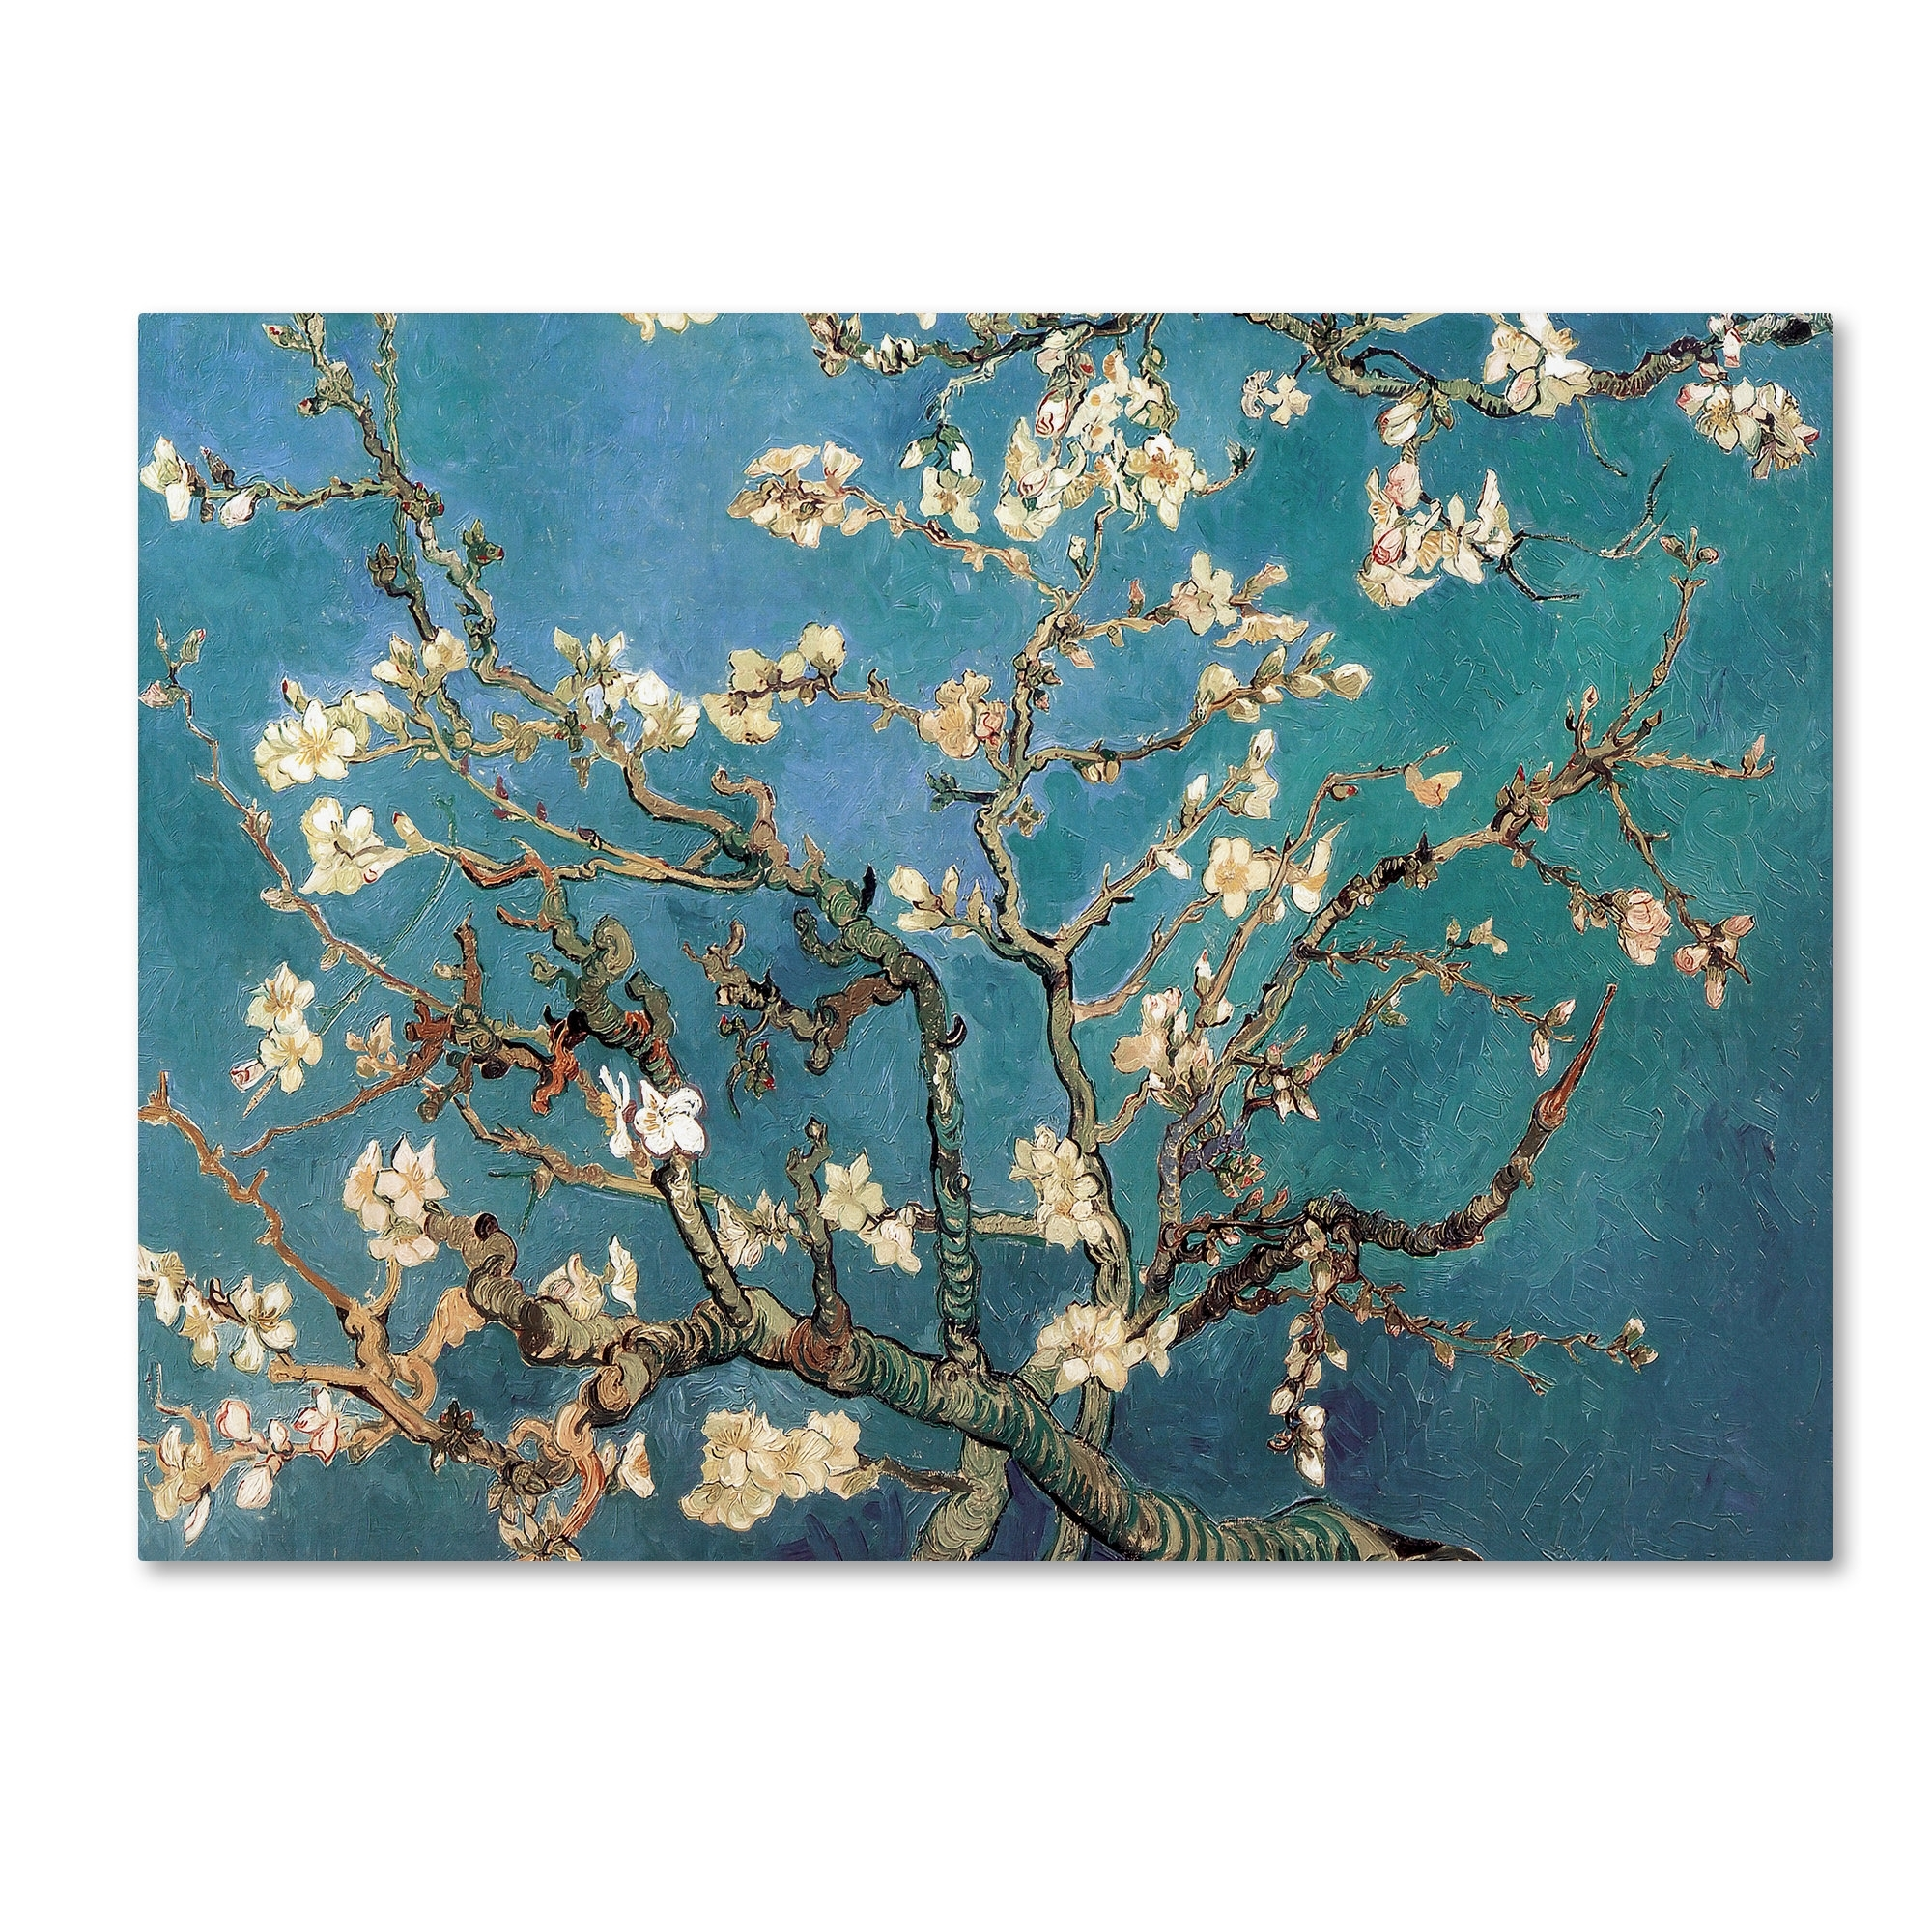 Trademark Art Almond Blossoms'vincent Van Gogh Framed On With Most Popular Almond Blossoms Vincent Van Gogh Wall Art (View 3 of 20)